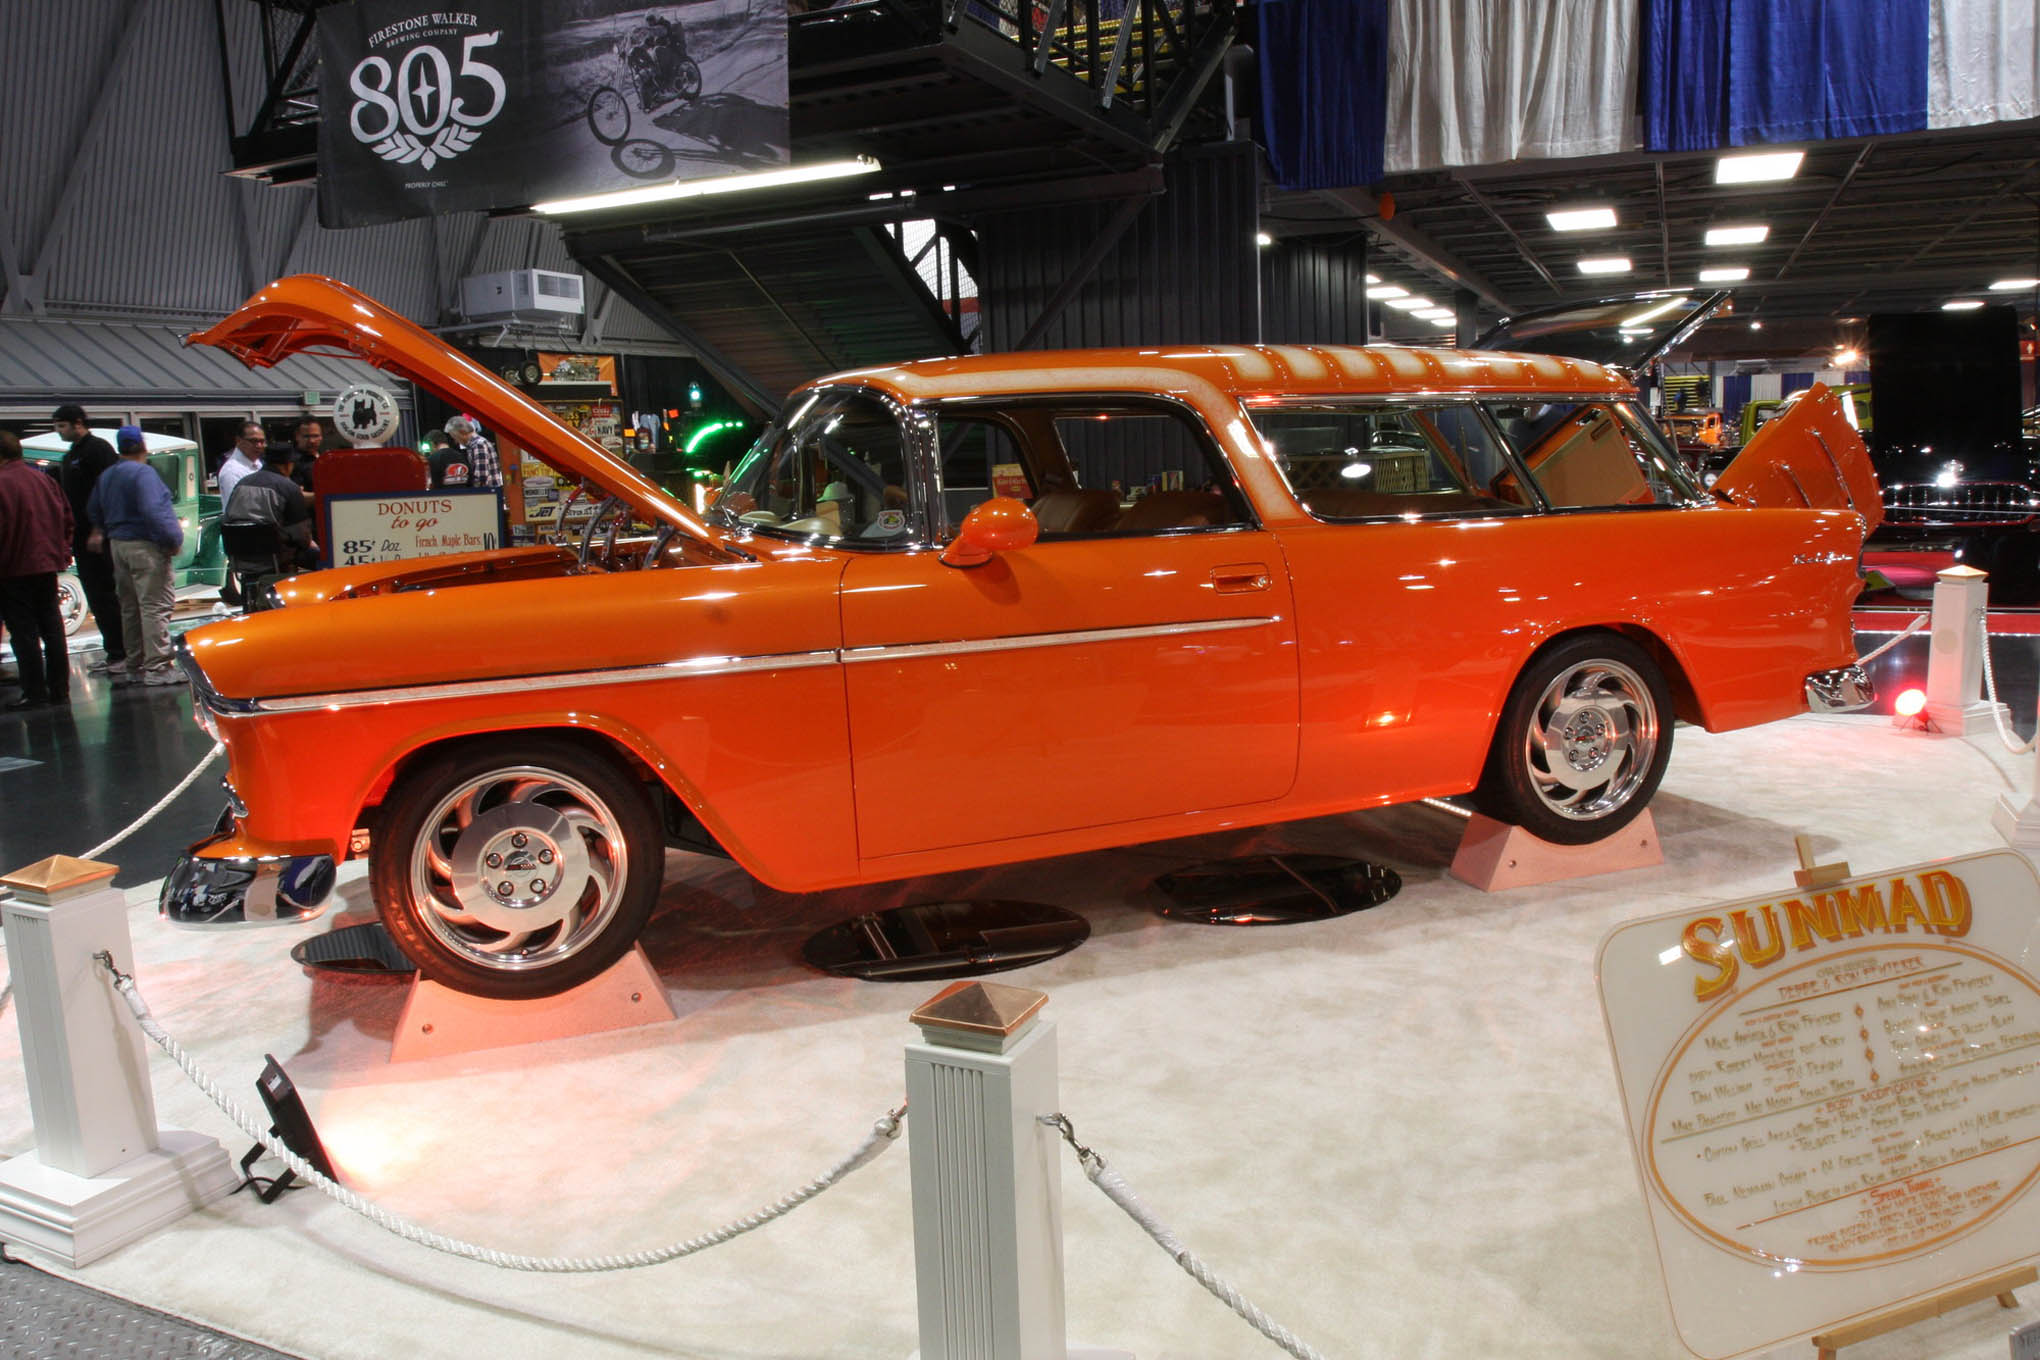 """The """"Sunmad"""" 1955 Chevy Nomad is owned by Ron and Debbie Pfisterer and is a great contemporary custom. Lexus seats, an LS1 engine, and 4L60E transmission are a few of the modern modifications."""